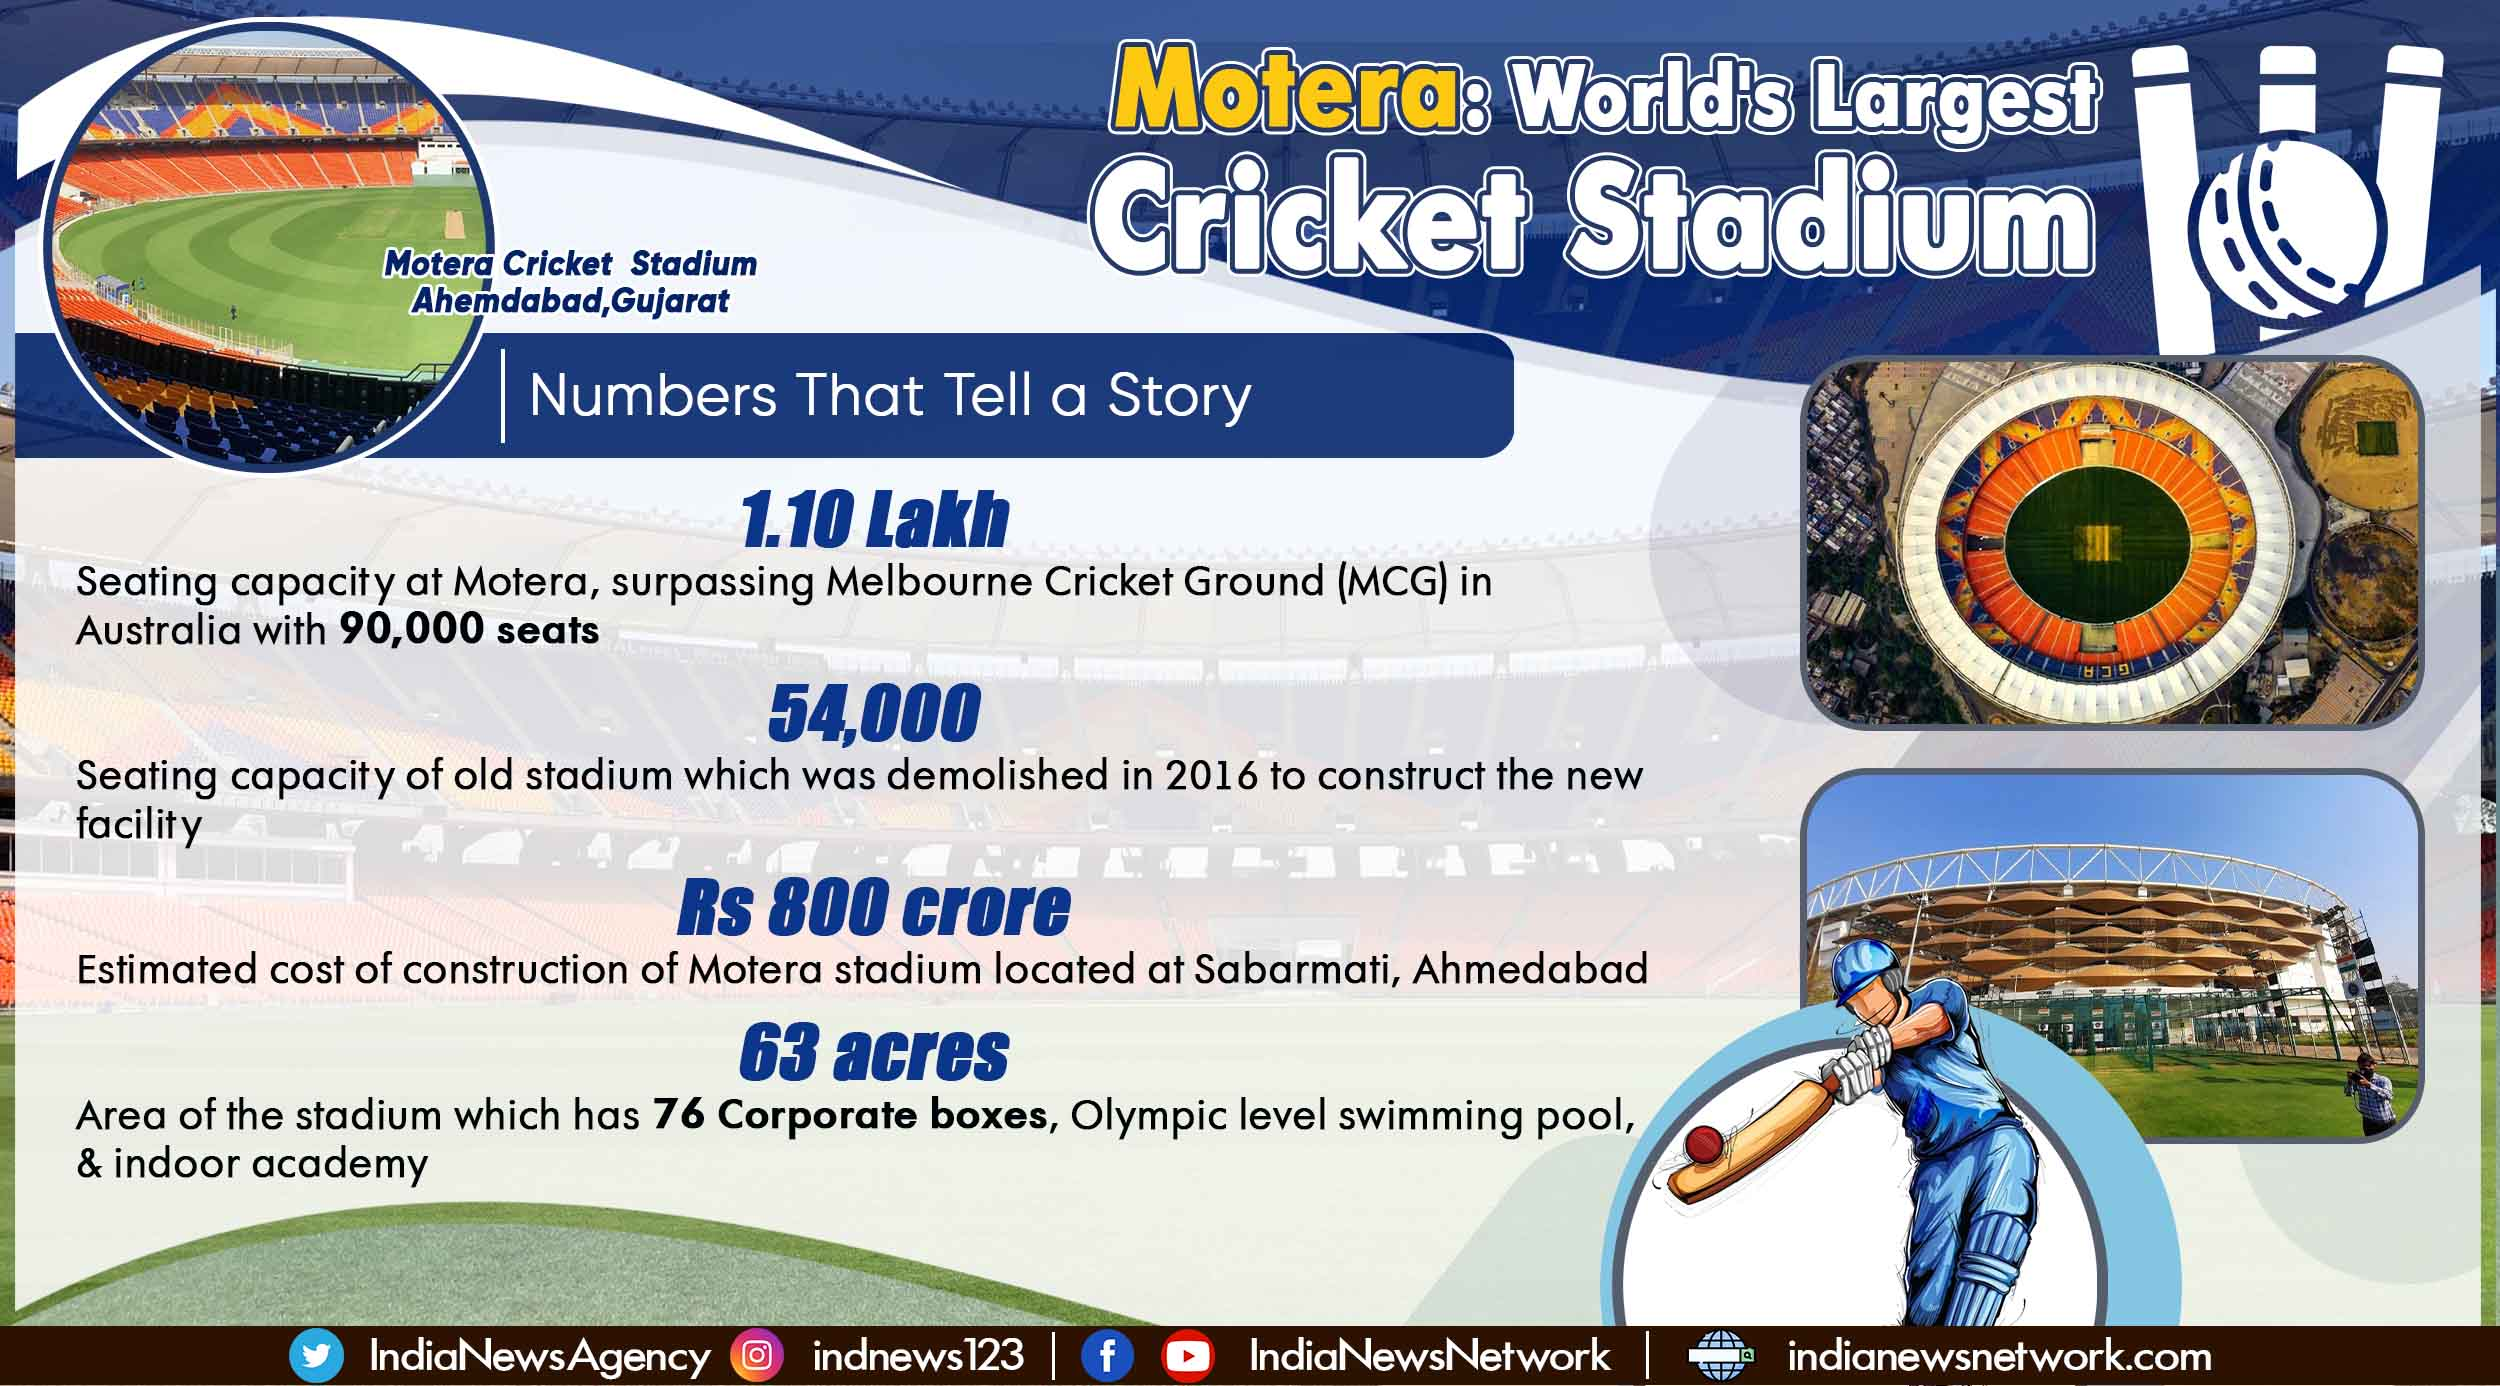 With seating for 1.10 lakh people, Gujarat's Motera becomes world's largest cricket stadium